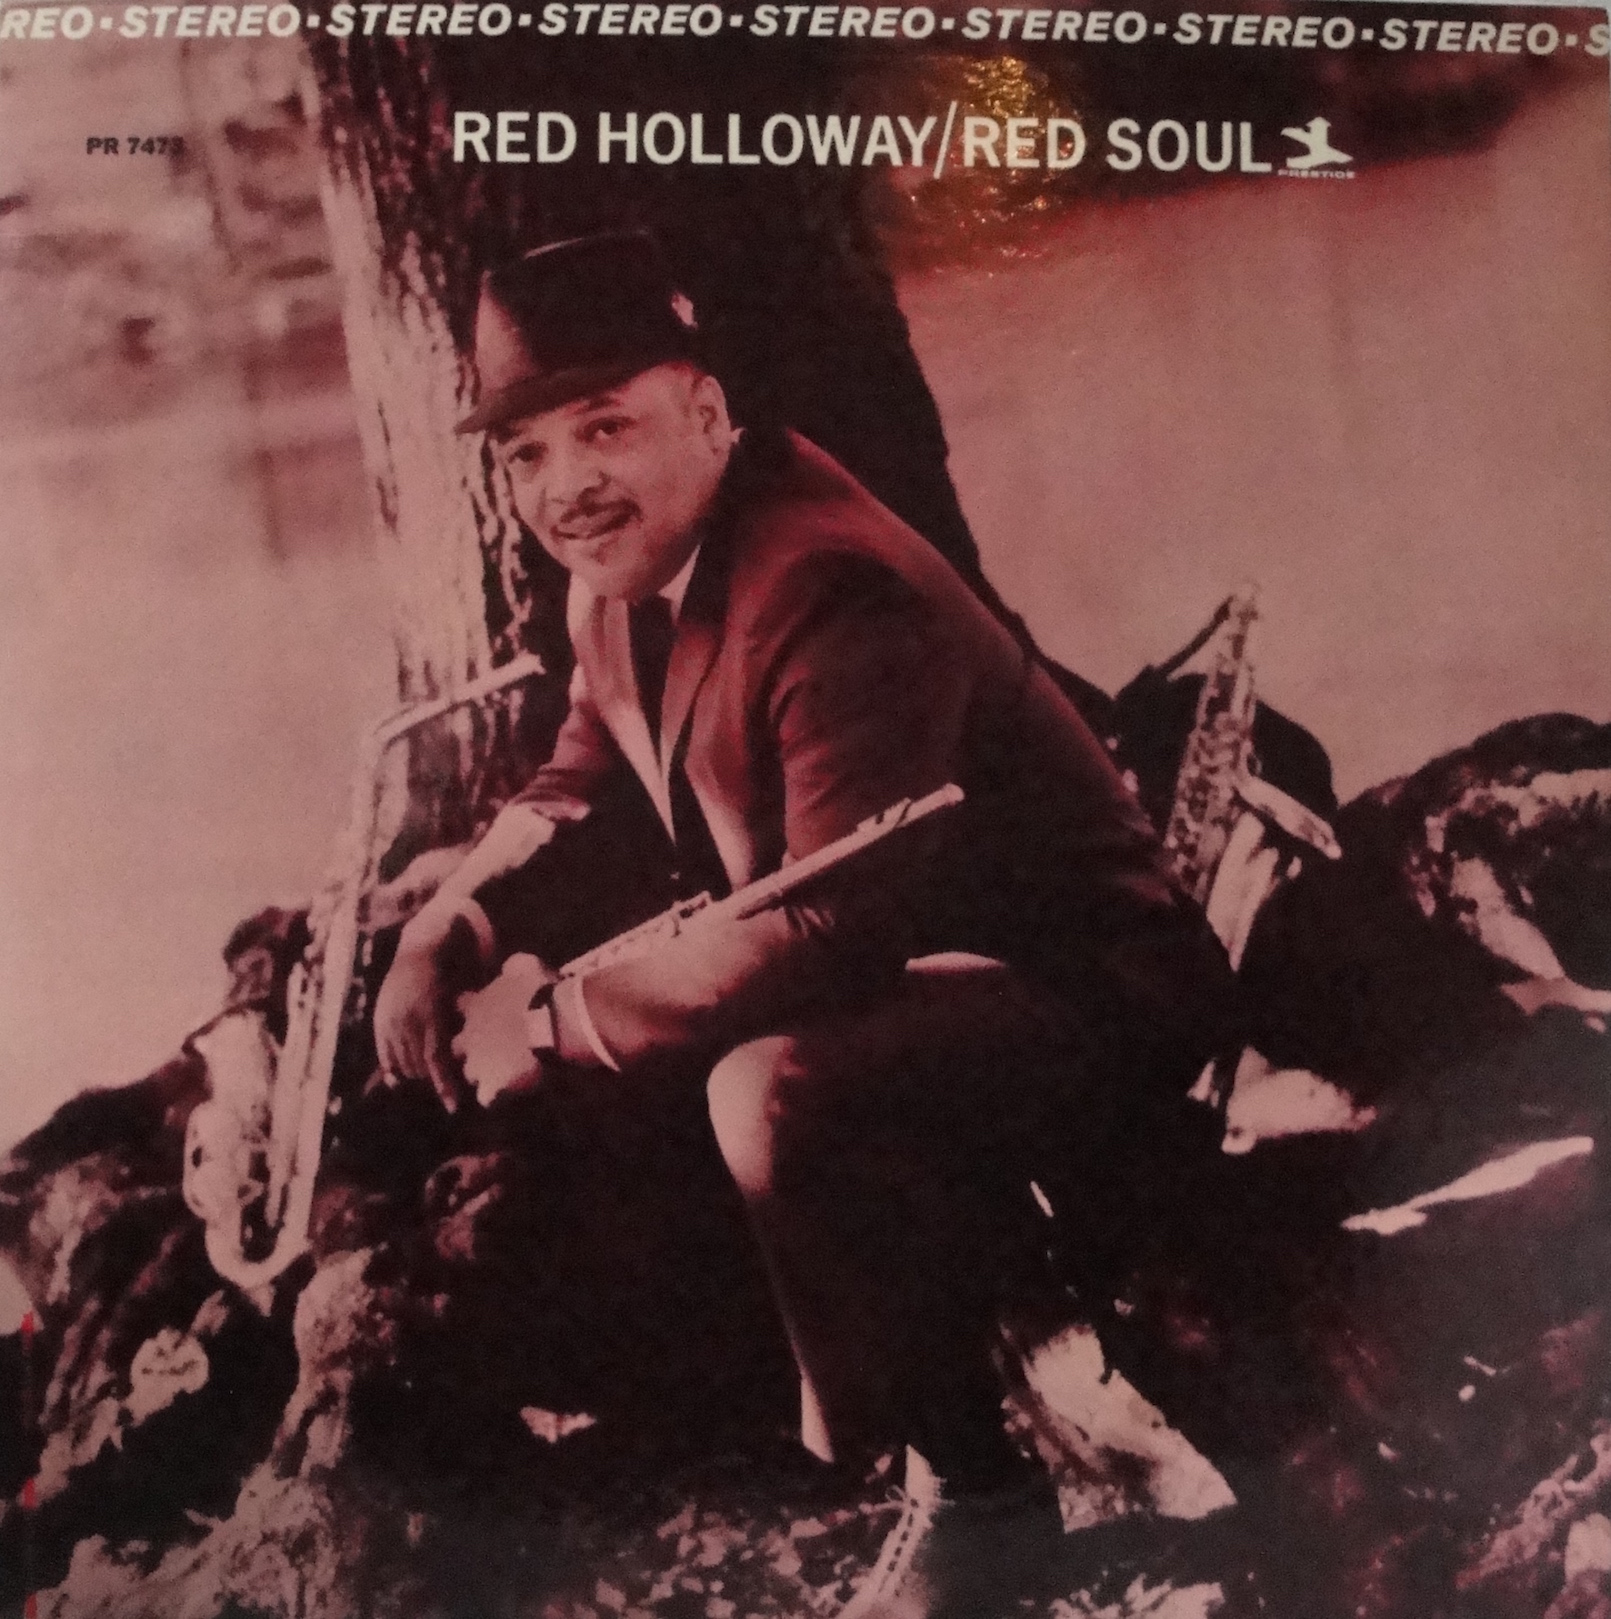 Red Holloway - Red Soul